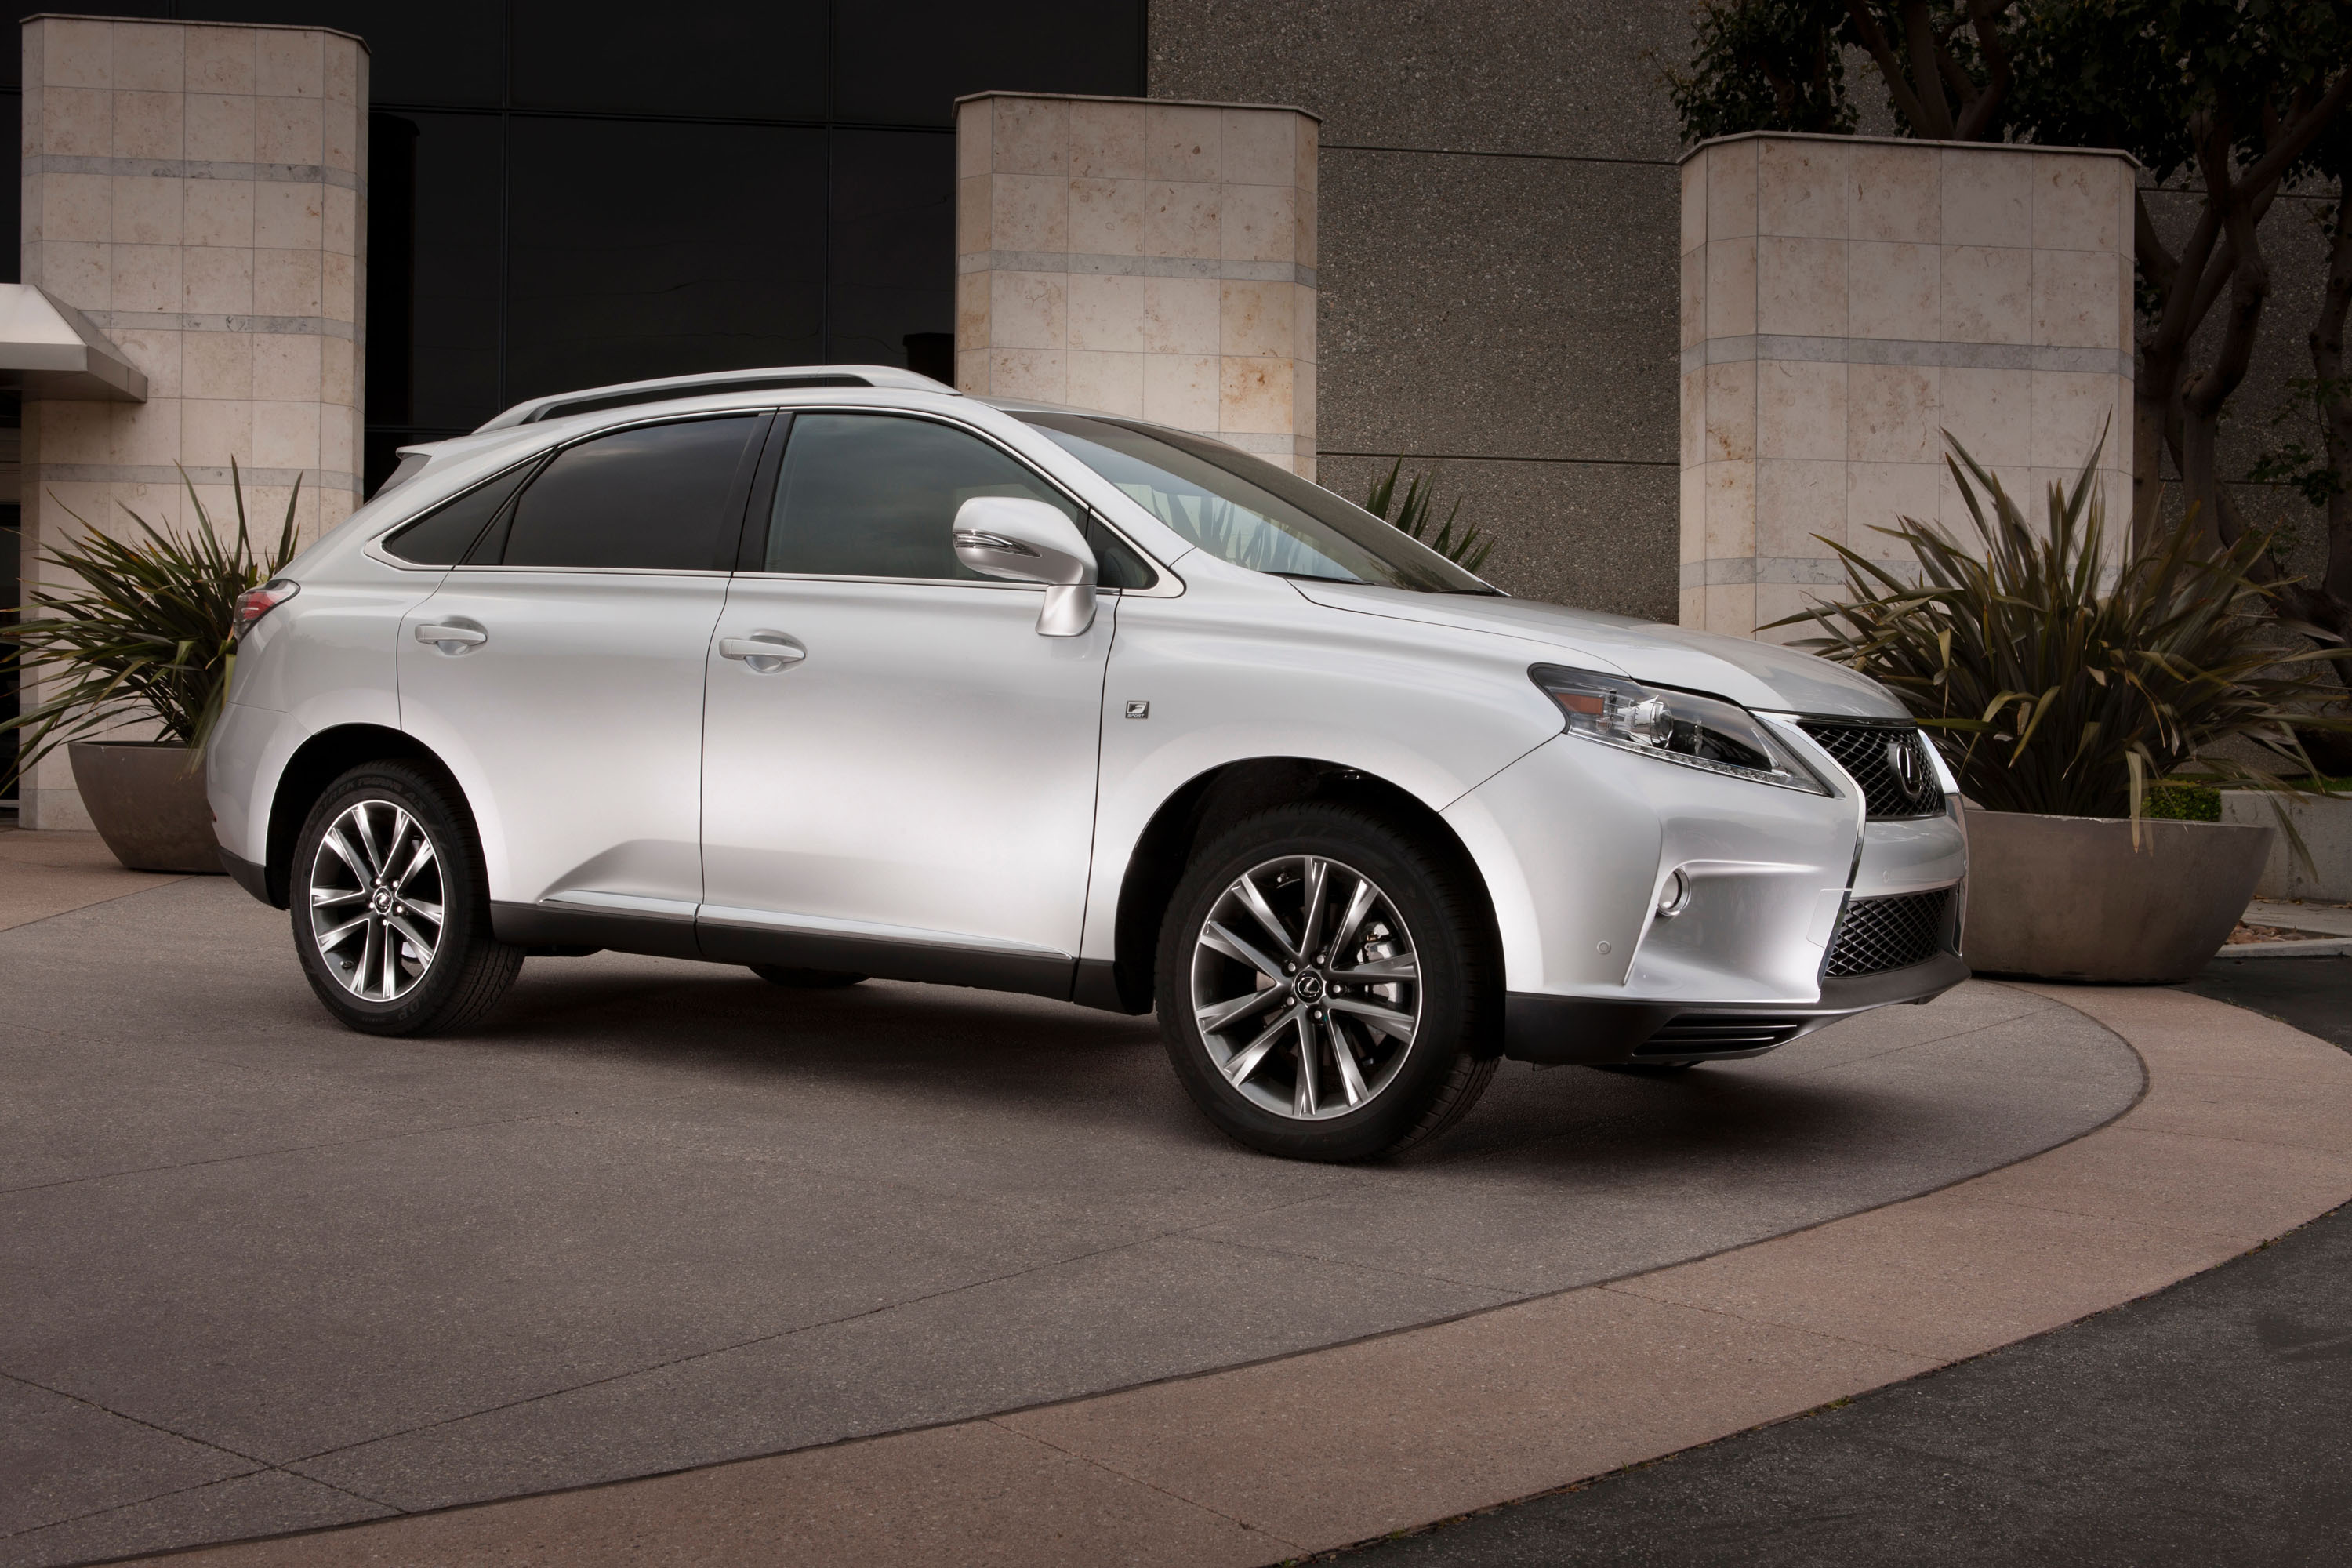 f lexus truck updates sport rx news prevnext get trend rear minor end